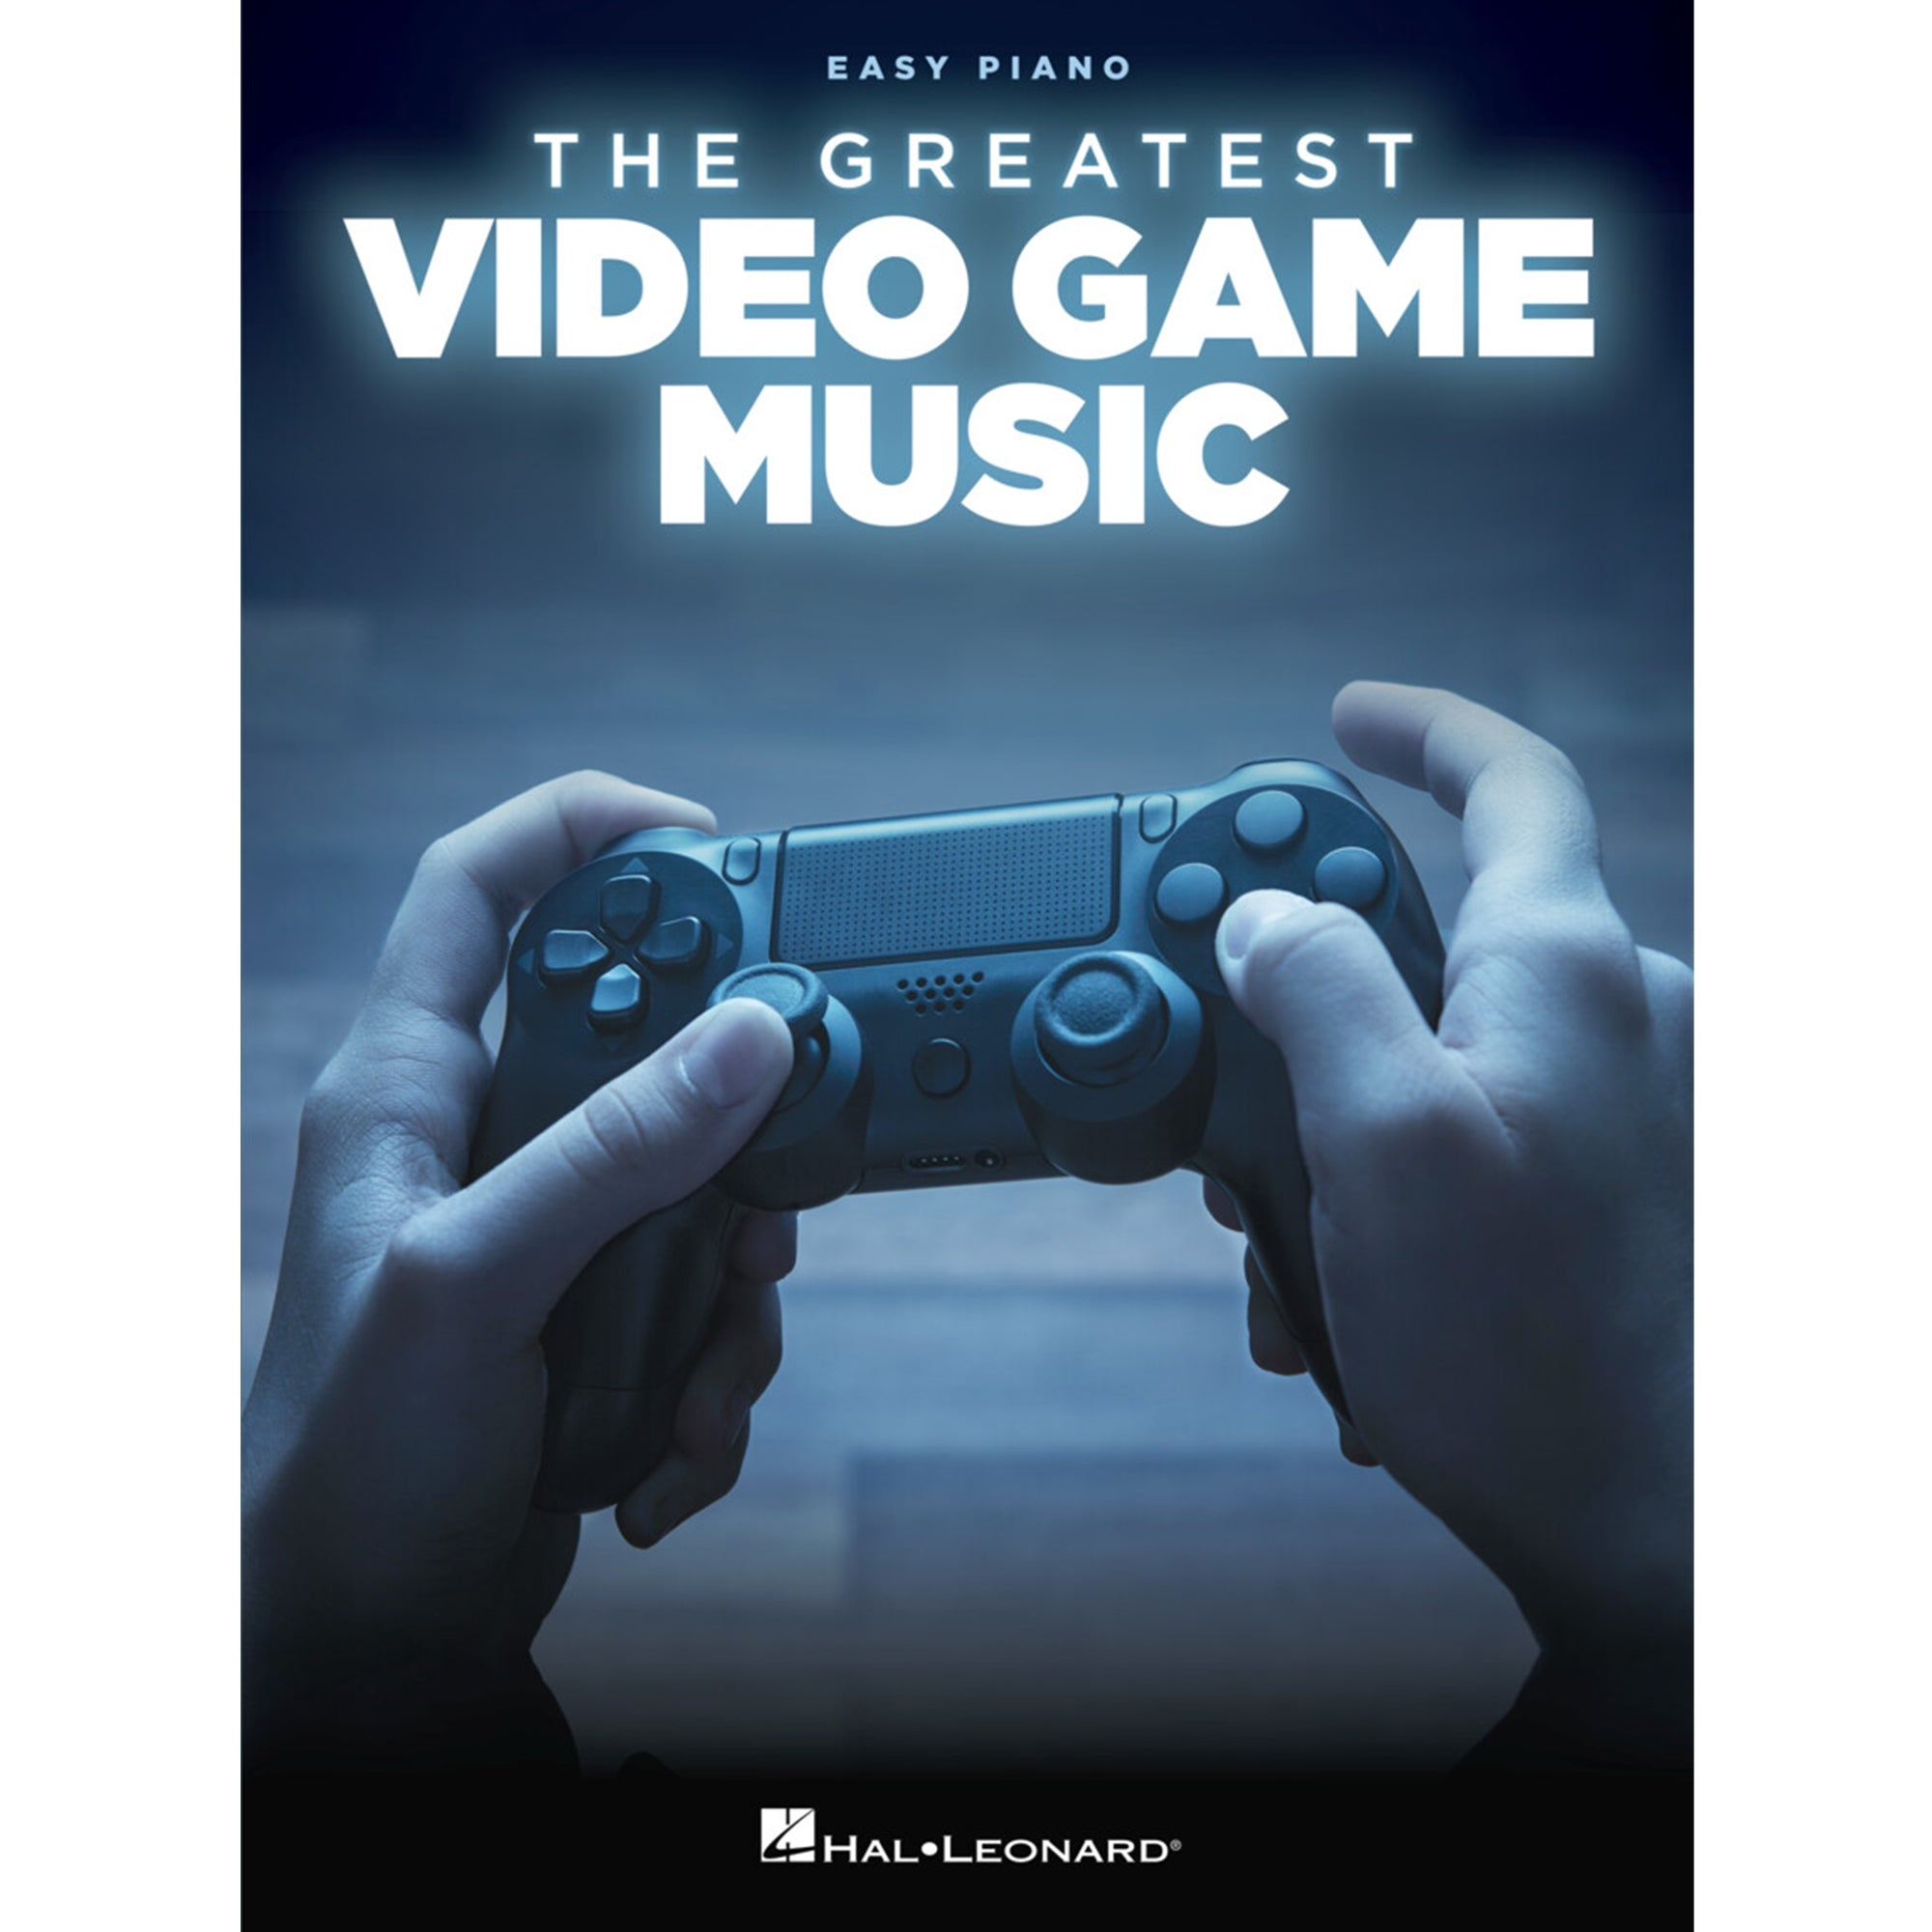 HAL LEONARD 202545 The Greatest Video Game Music Easy Piano